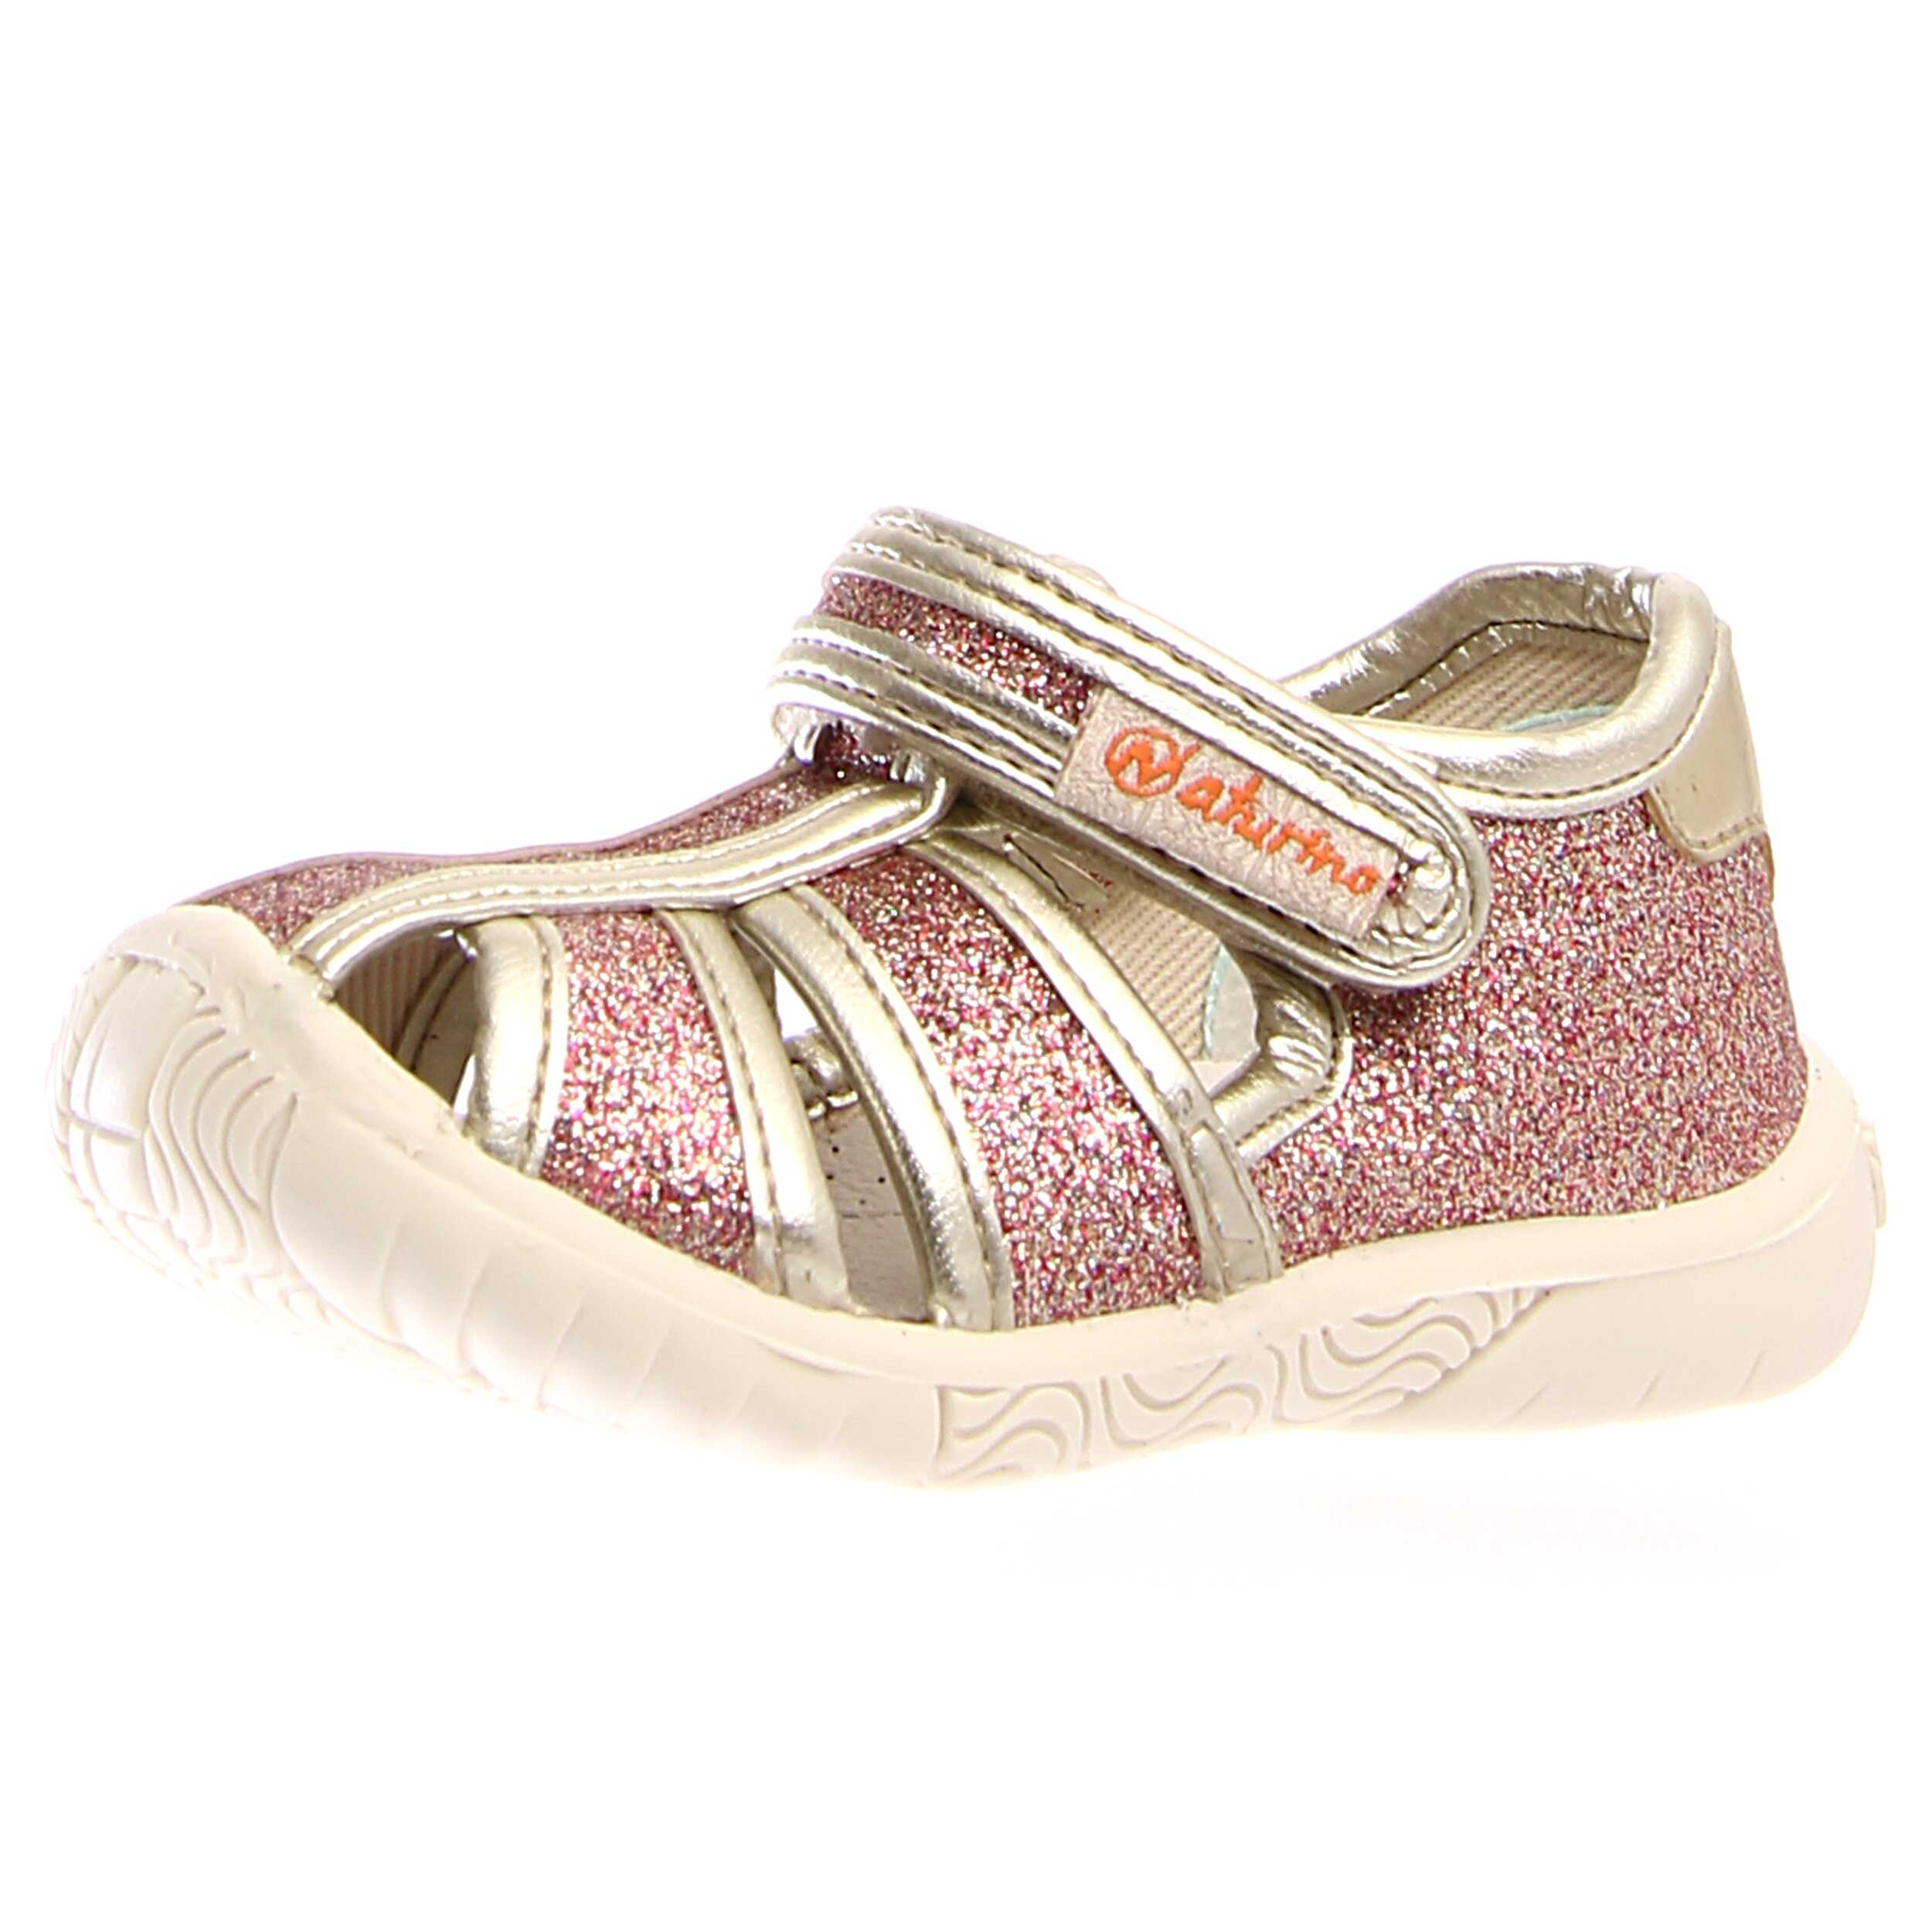 *FINAL SALE* Terni - Glitter Multicolor